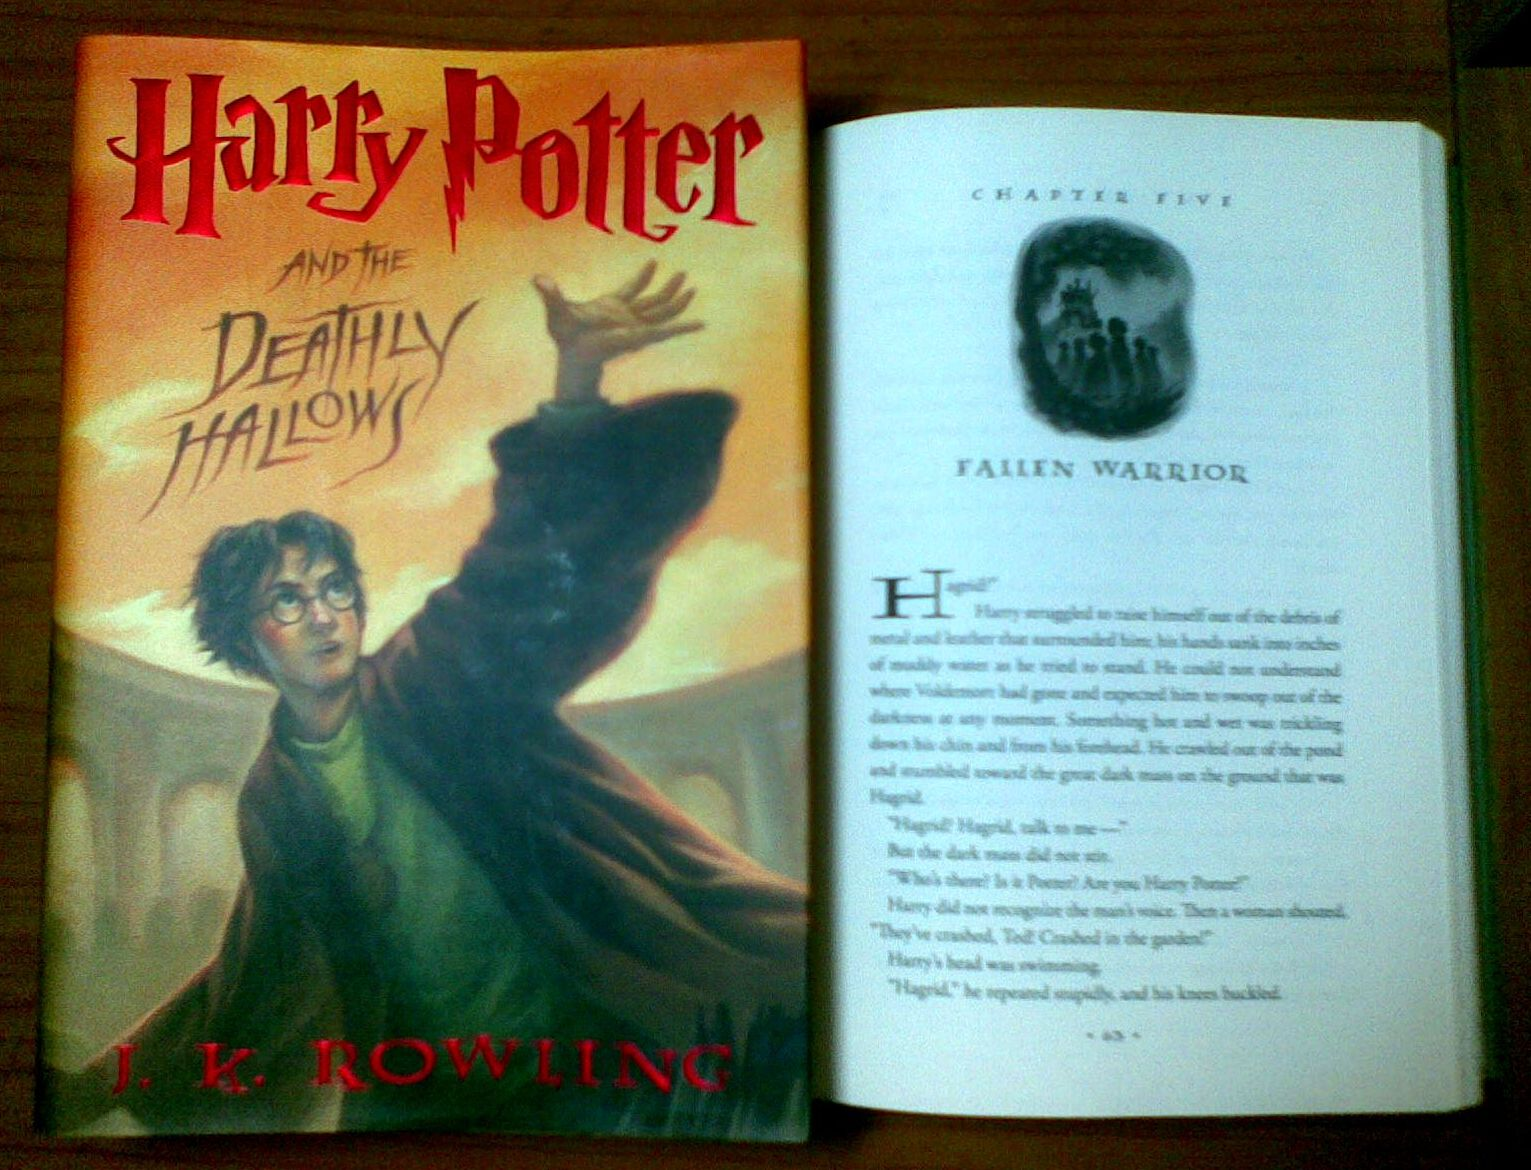 Harry Potter Book Trailer : Harry potter and the deathly hallows main trailer